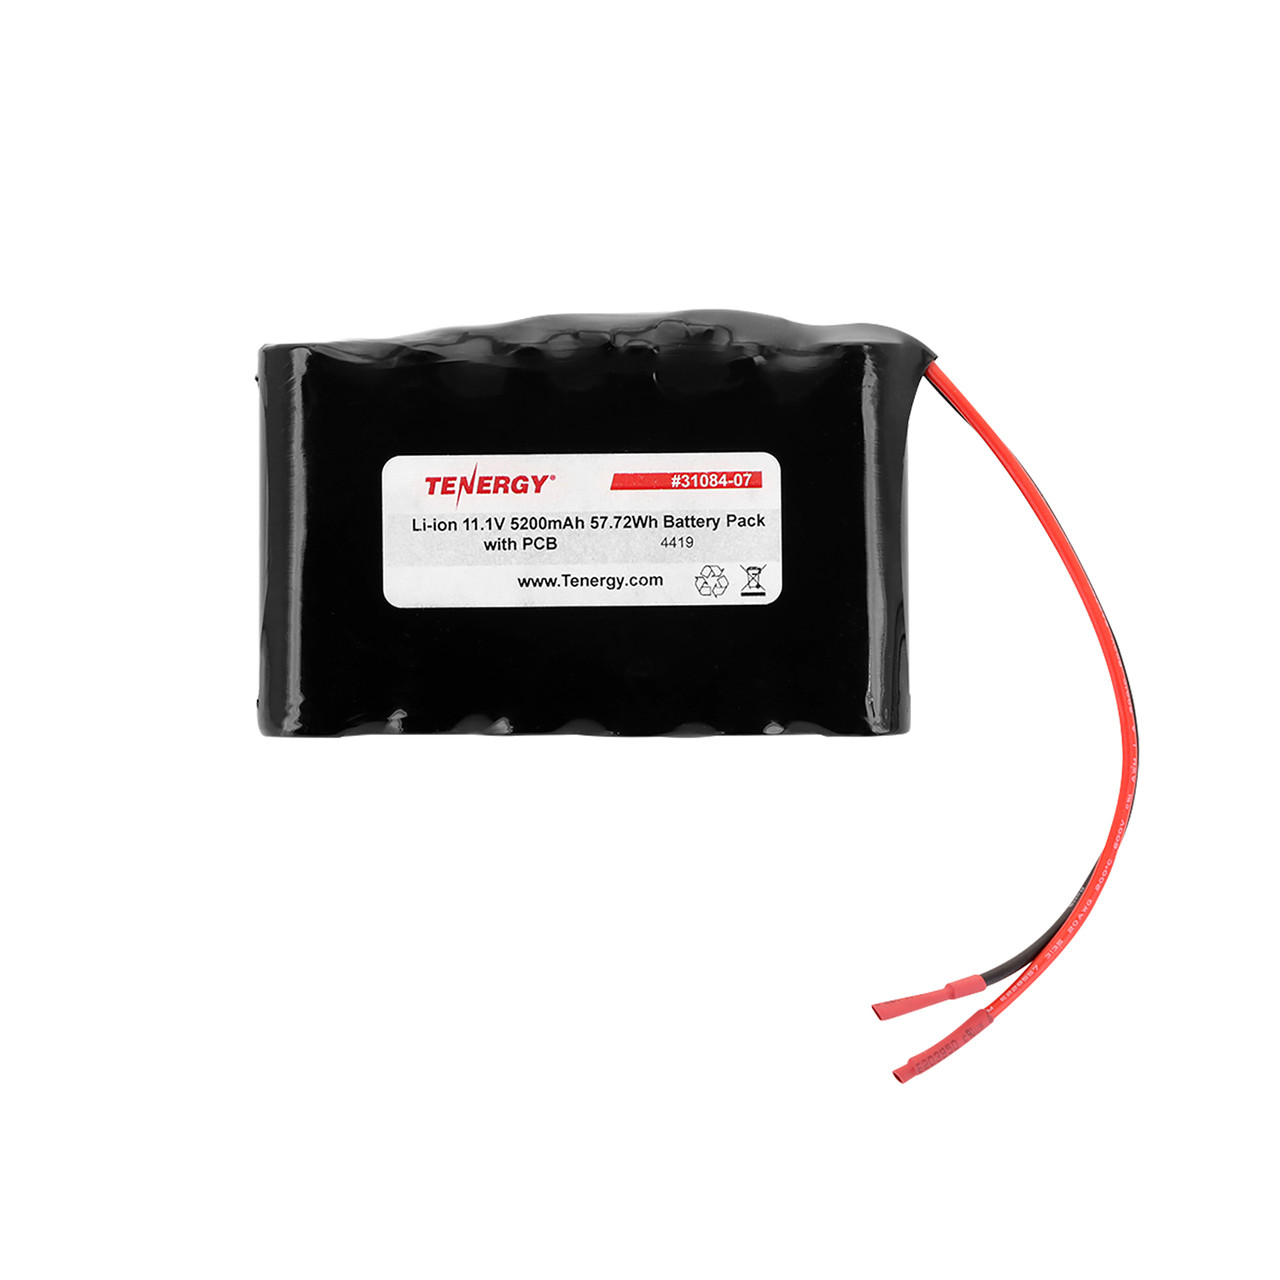 AT: Tenergy Li-ion 18650 11.1V 5200mAh Rechargeable Battery Pack w/ PCB (3S2P, 57.72Wh, 9A Rate)